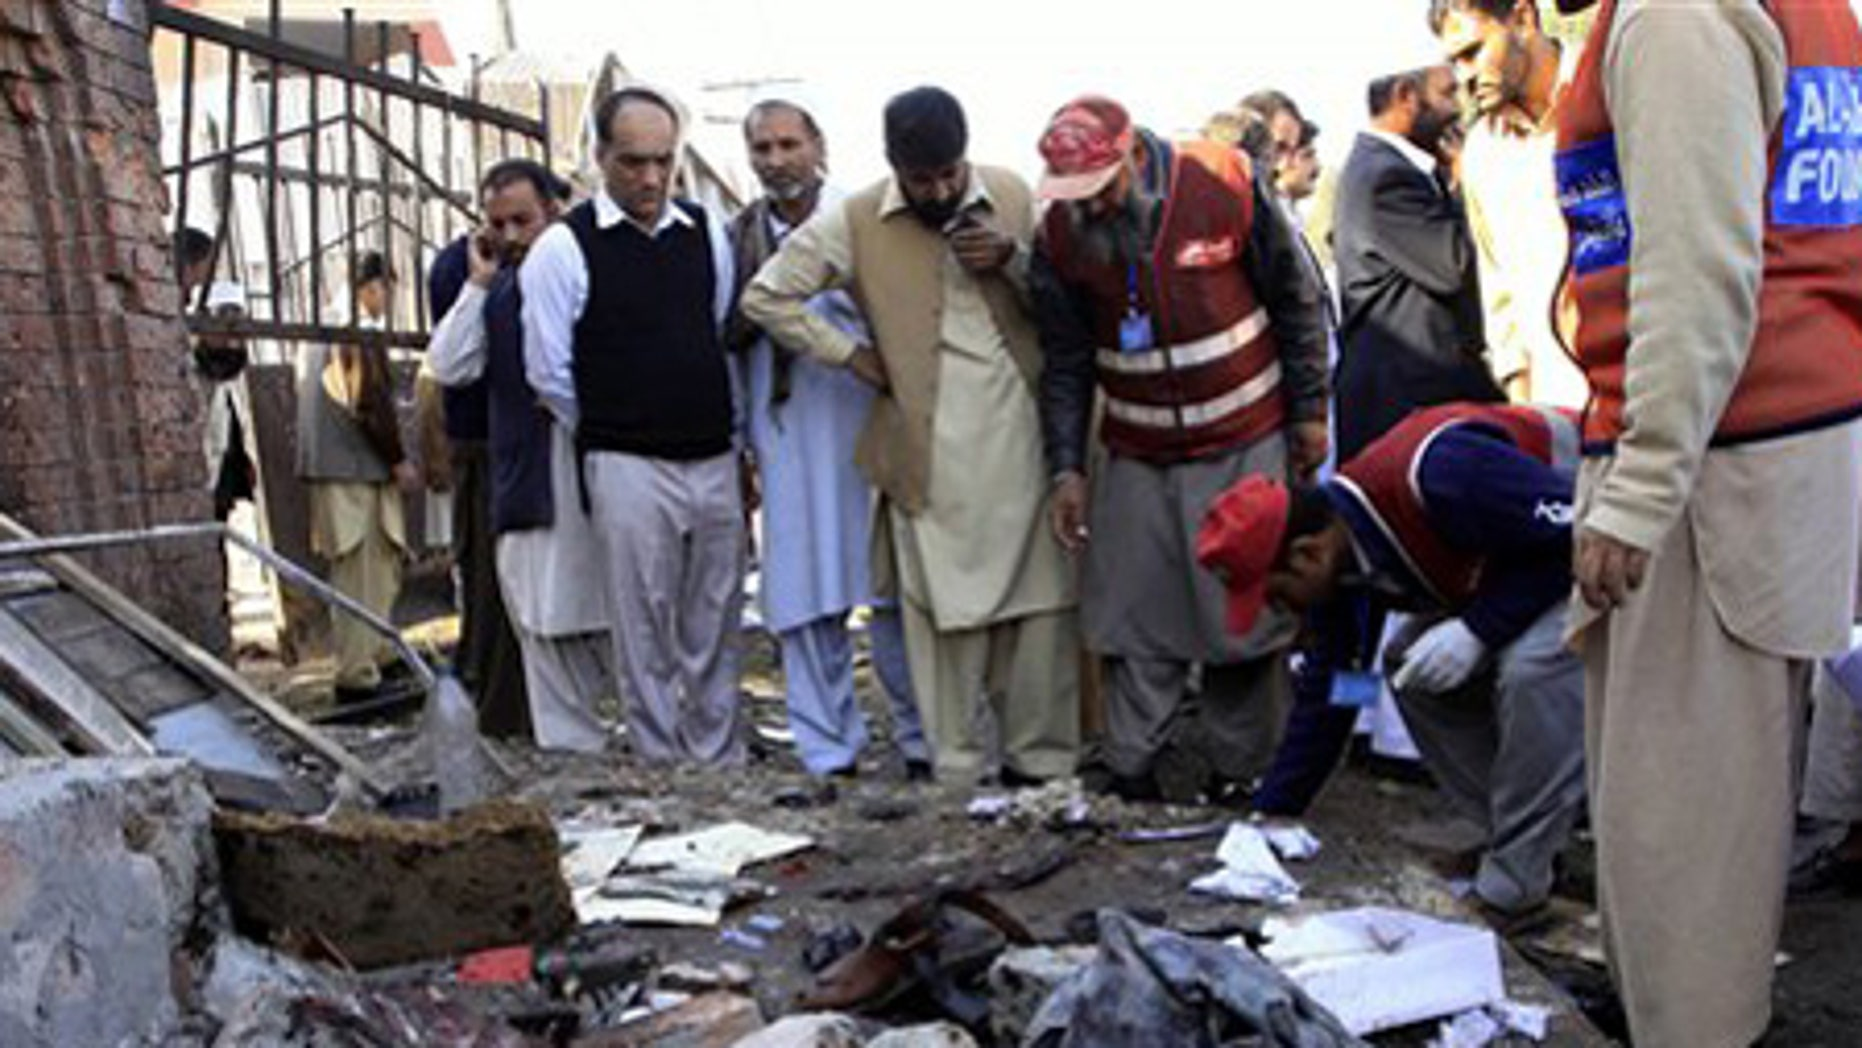 Nov. 19: People gather at the spot of a homicide bombing outside a courthouse in Peshawar, Pakistan.